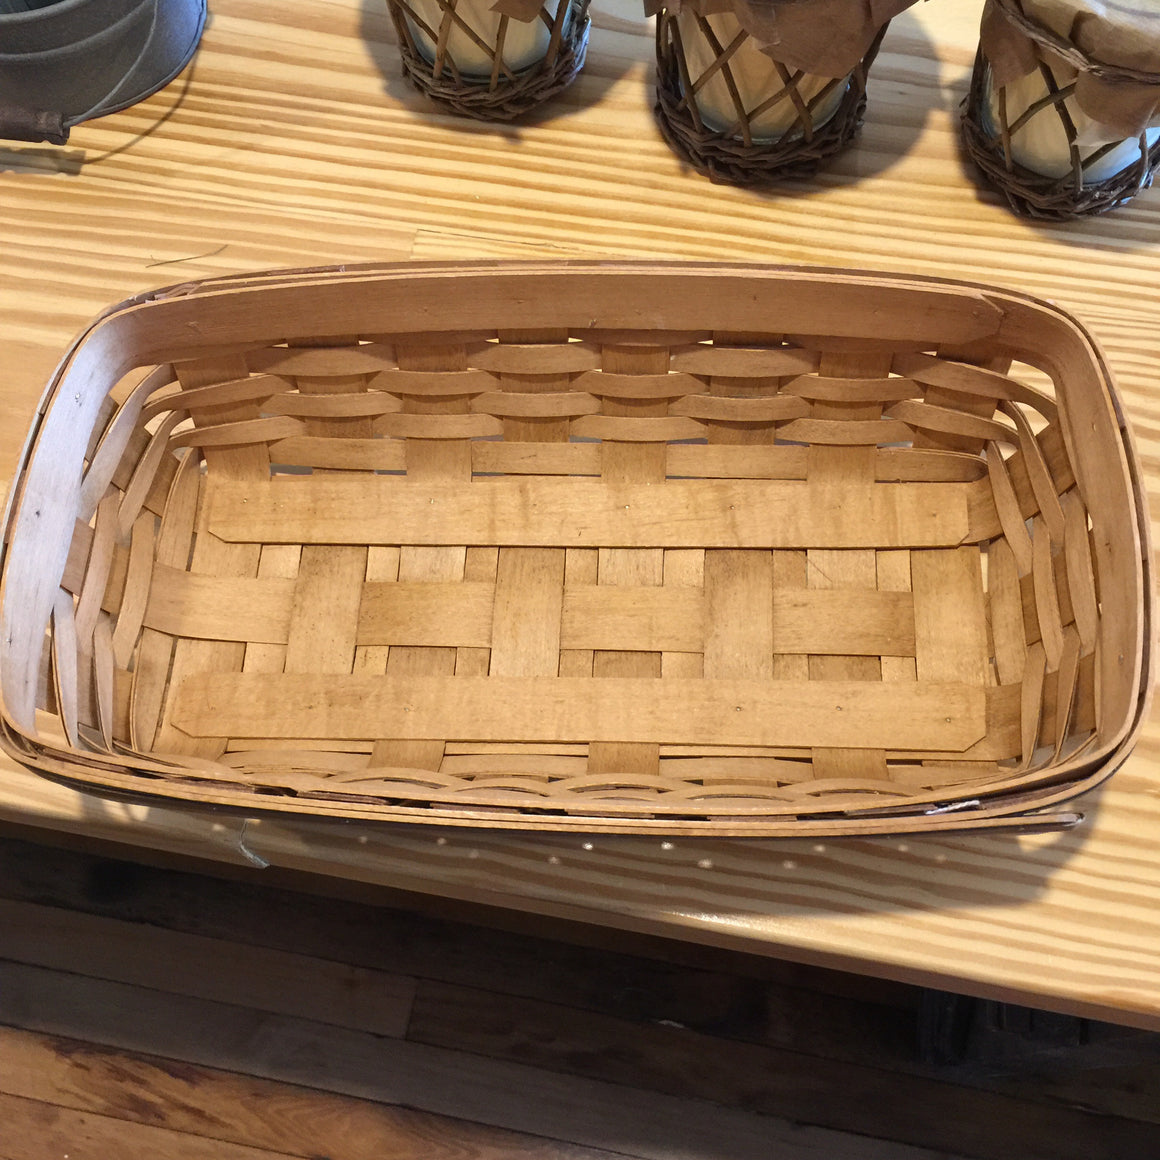 Basket - Bread Basket (no handles)